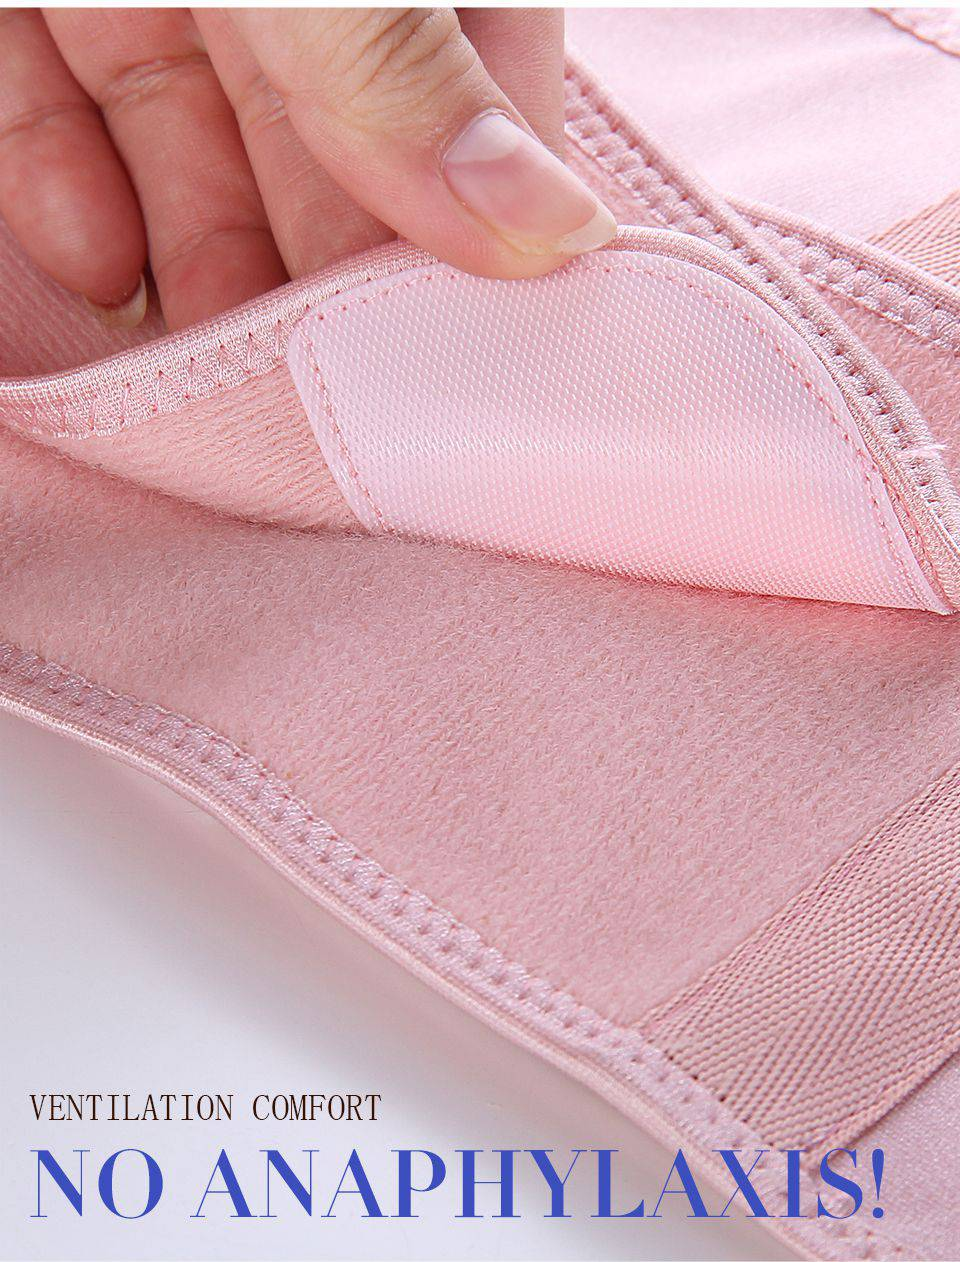 Are you out looking for the best postpartum girdles to buy?